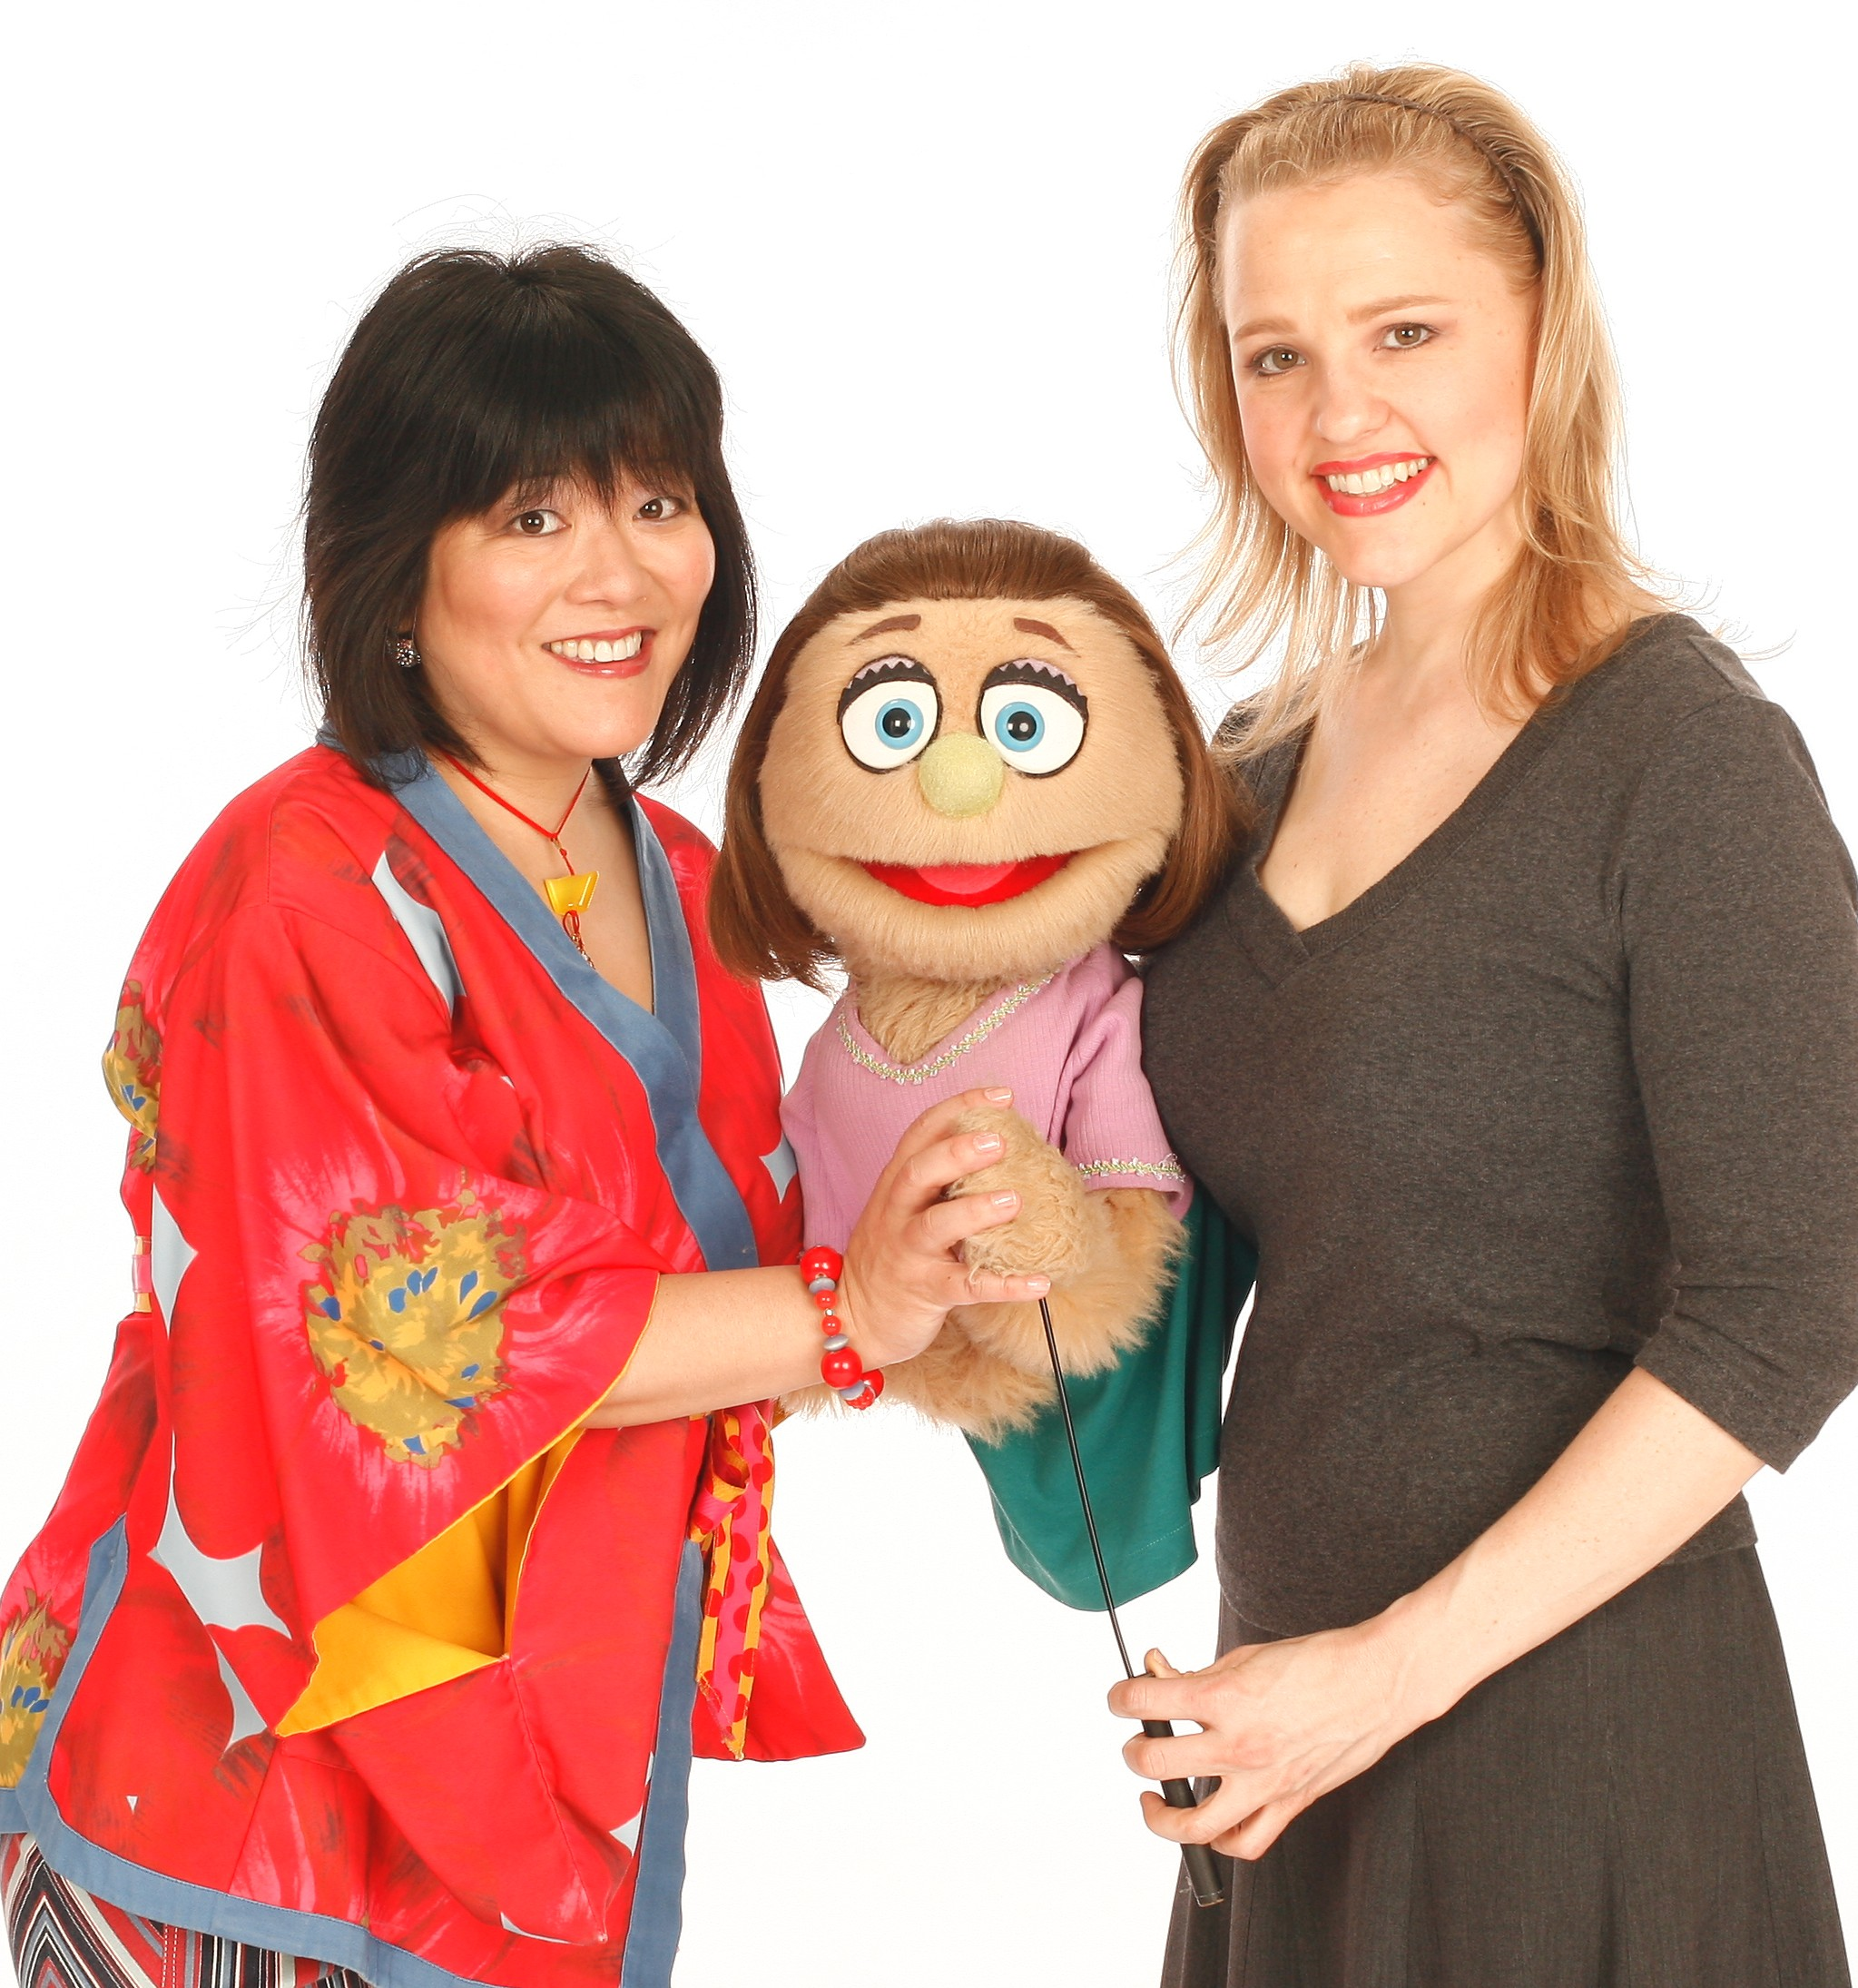 AVENUE Q 'Exit Interview' with Ann Harada: We Ruv You, Christmas Eve!